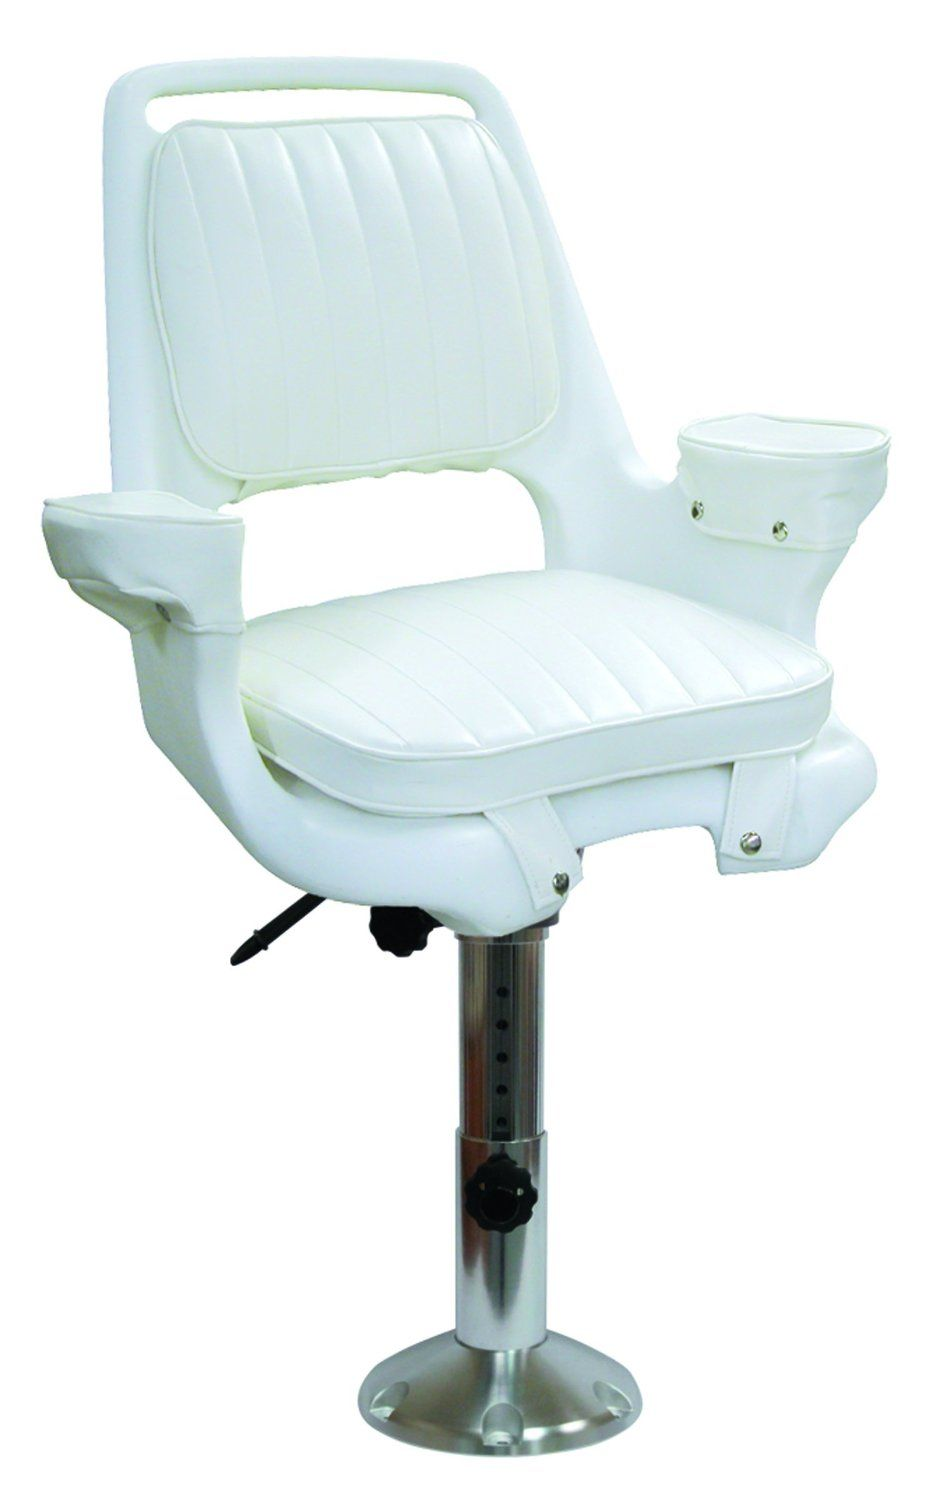 """Wise #Captains #Chair with Cushions, 12-18"""" Adjustable Height #Pedestal and #Seat #Slide @motorboatseats http://www.amazon.com/gp/product/B003E1ZCH8/ref=as_li_tl?ie=UTF8&camp=1789&creative=390957&creativeASIN=B003E1ZCH8&linkCode=as2&tag=pinboatseats-20&linkId=EVSGILIQ4EFN76IJ"""